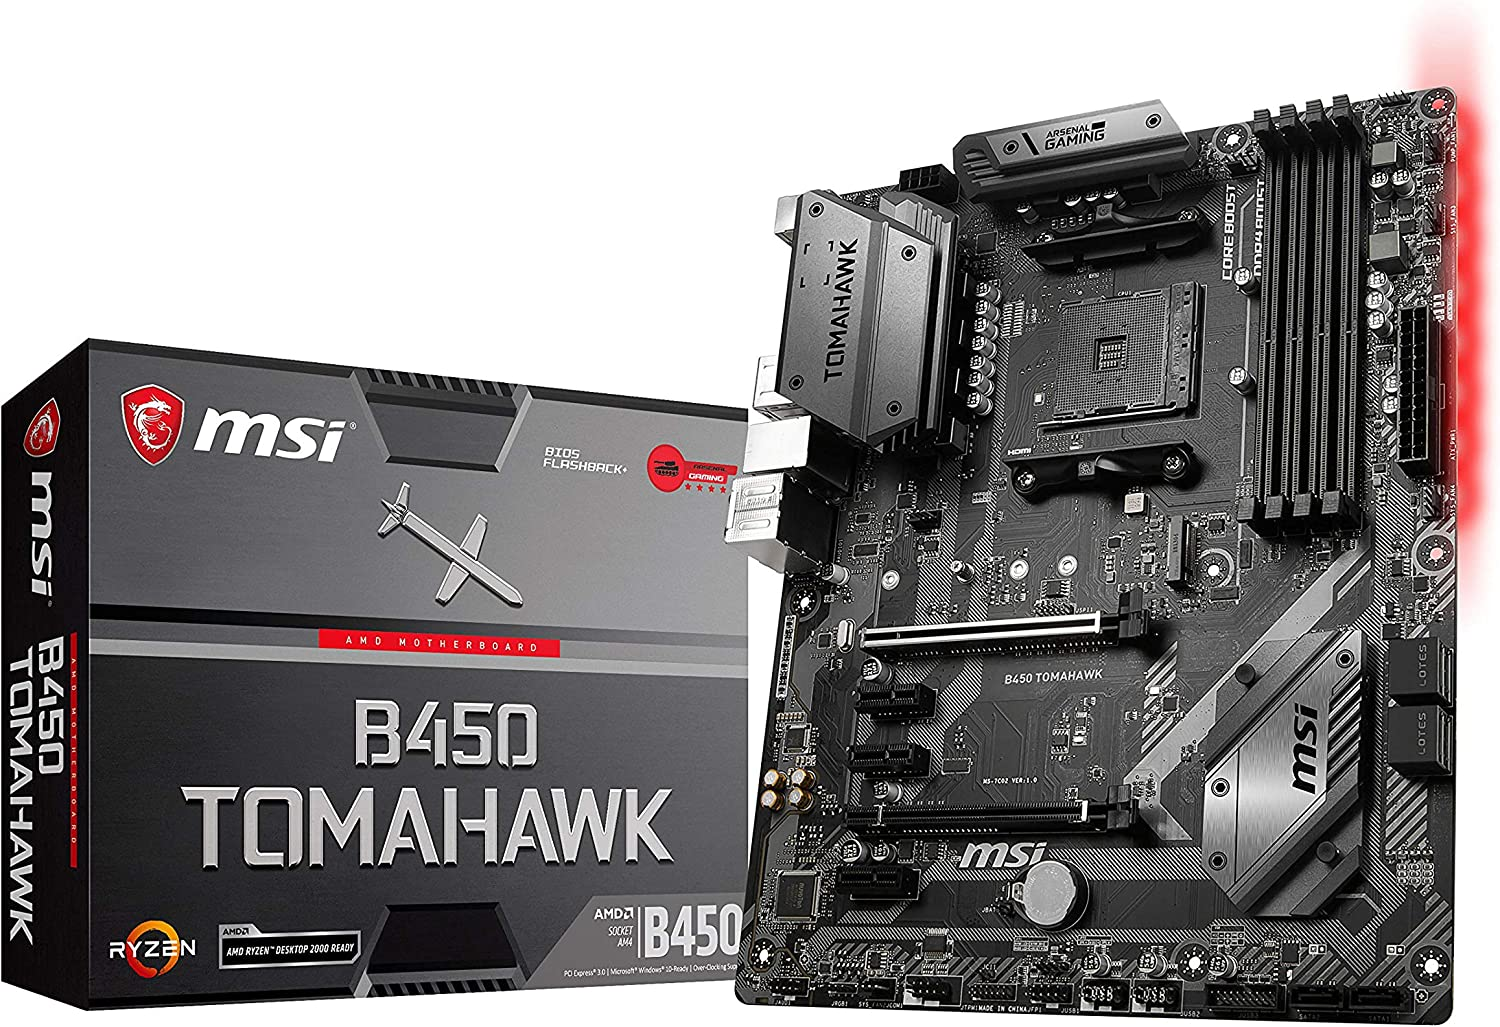 91uMdGRdqgL. AC SL1500 Best Ryzen 5 2600 Motherboards Reviews